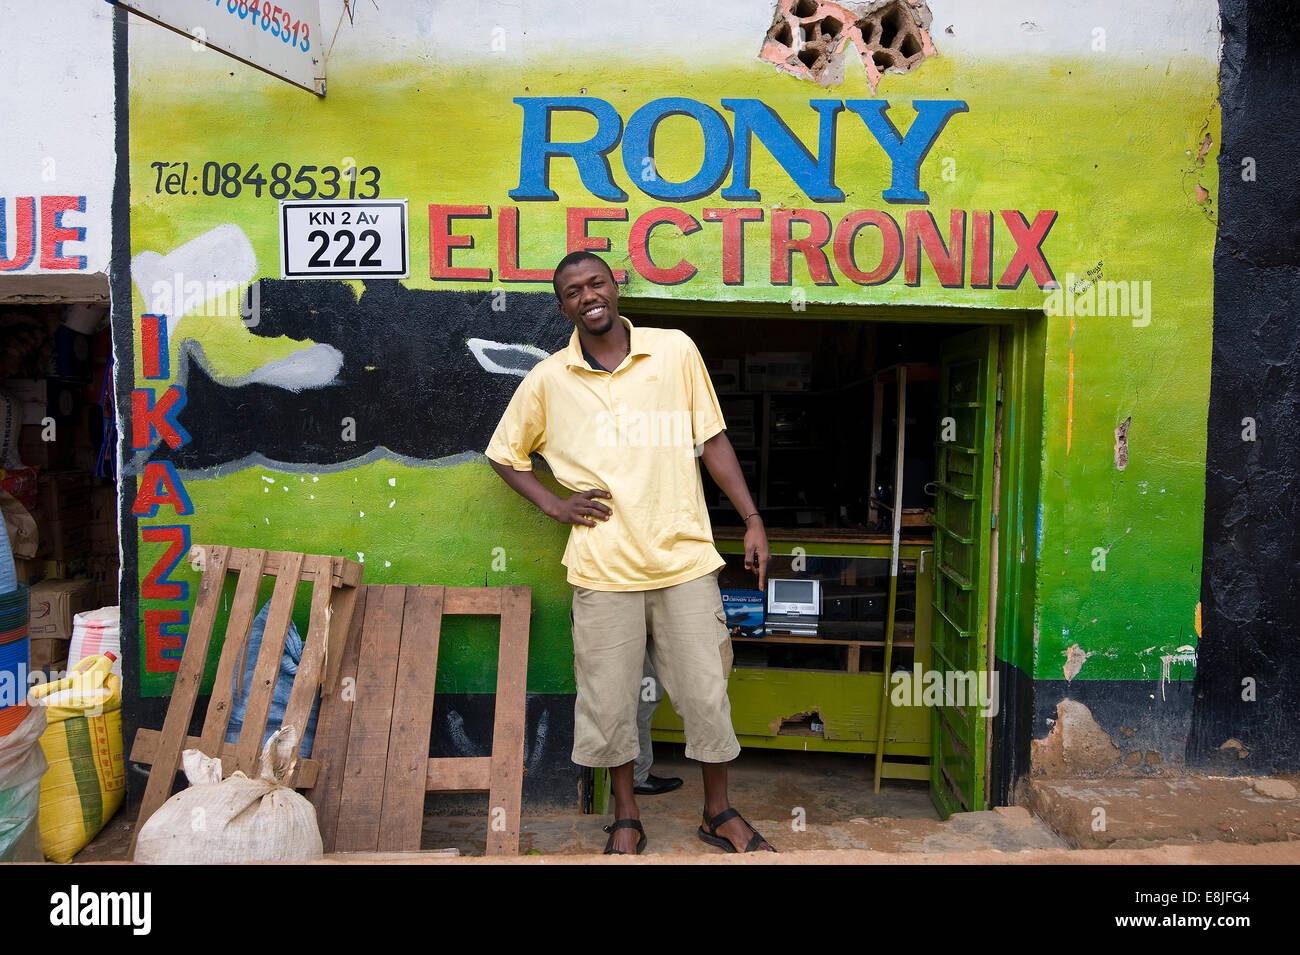 RWANDA, KIGALI: Shop fronts are often very colorful - Stock Image